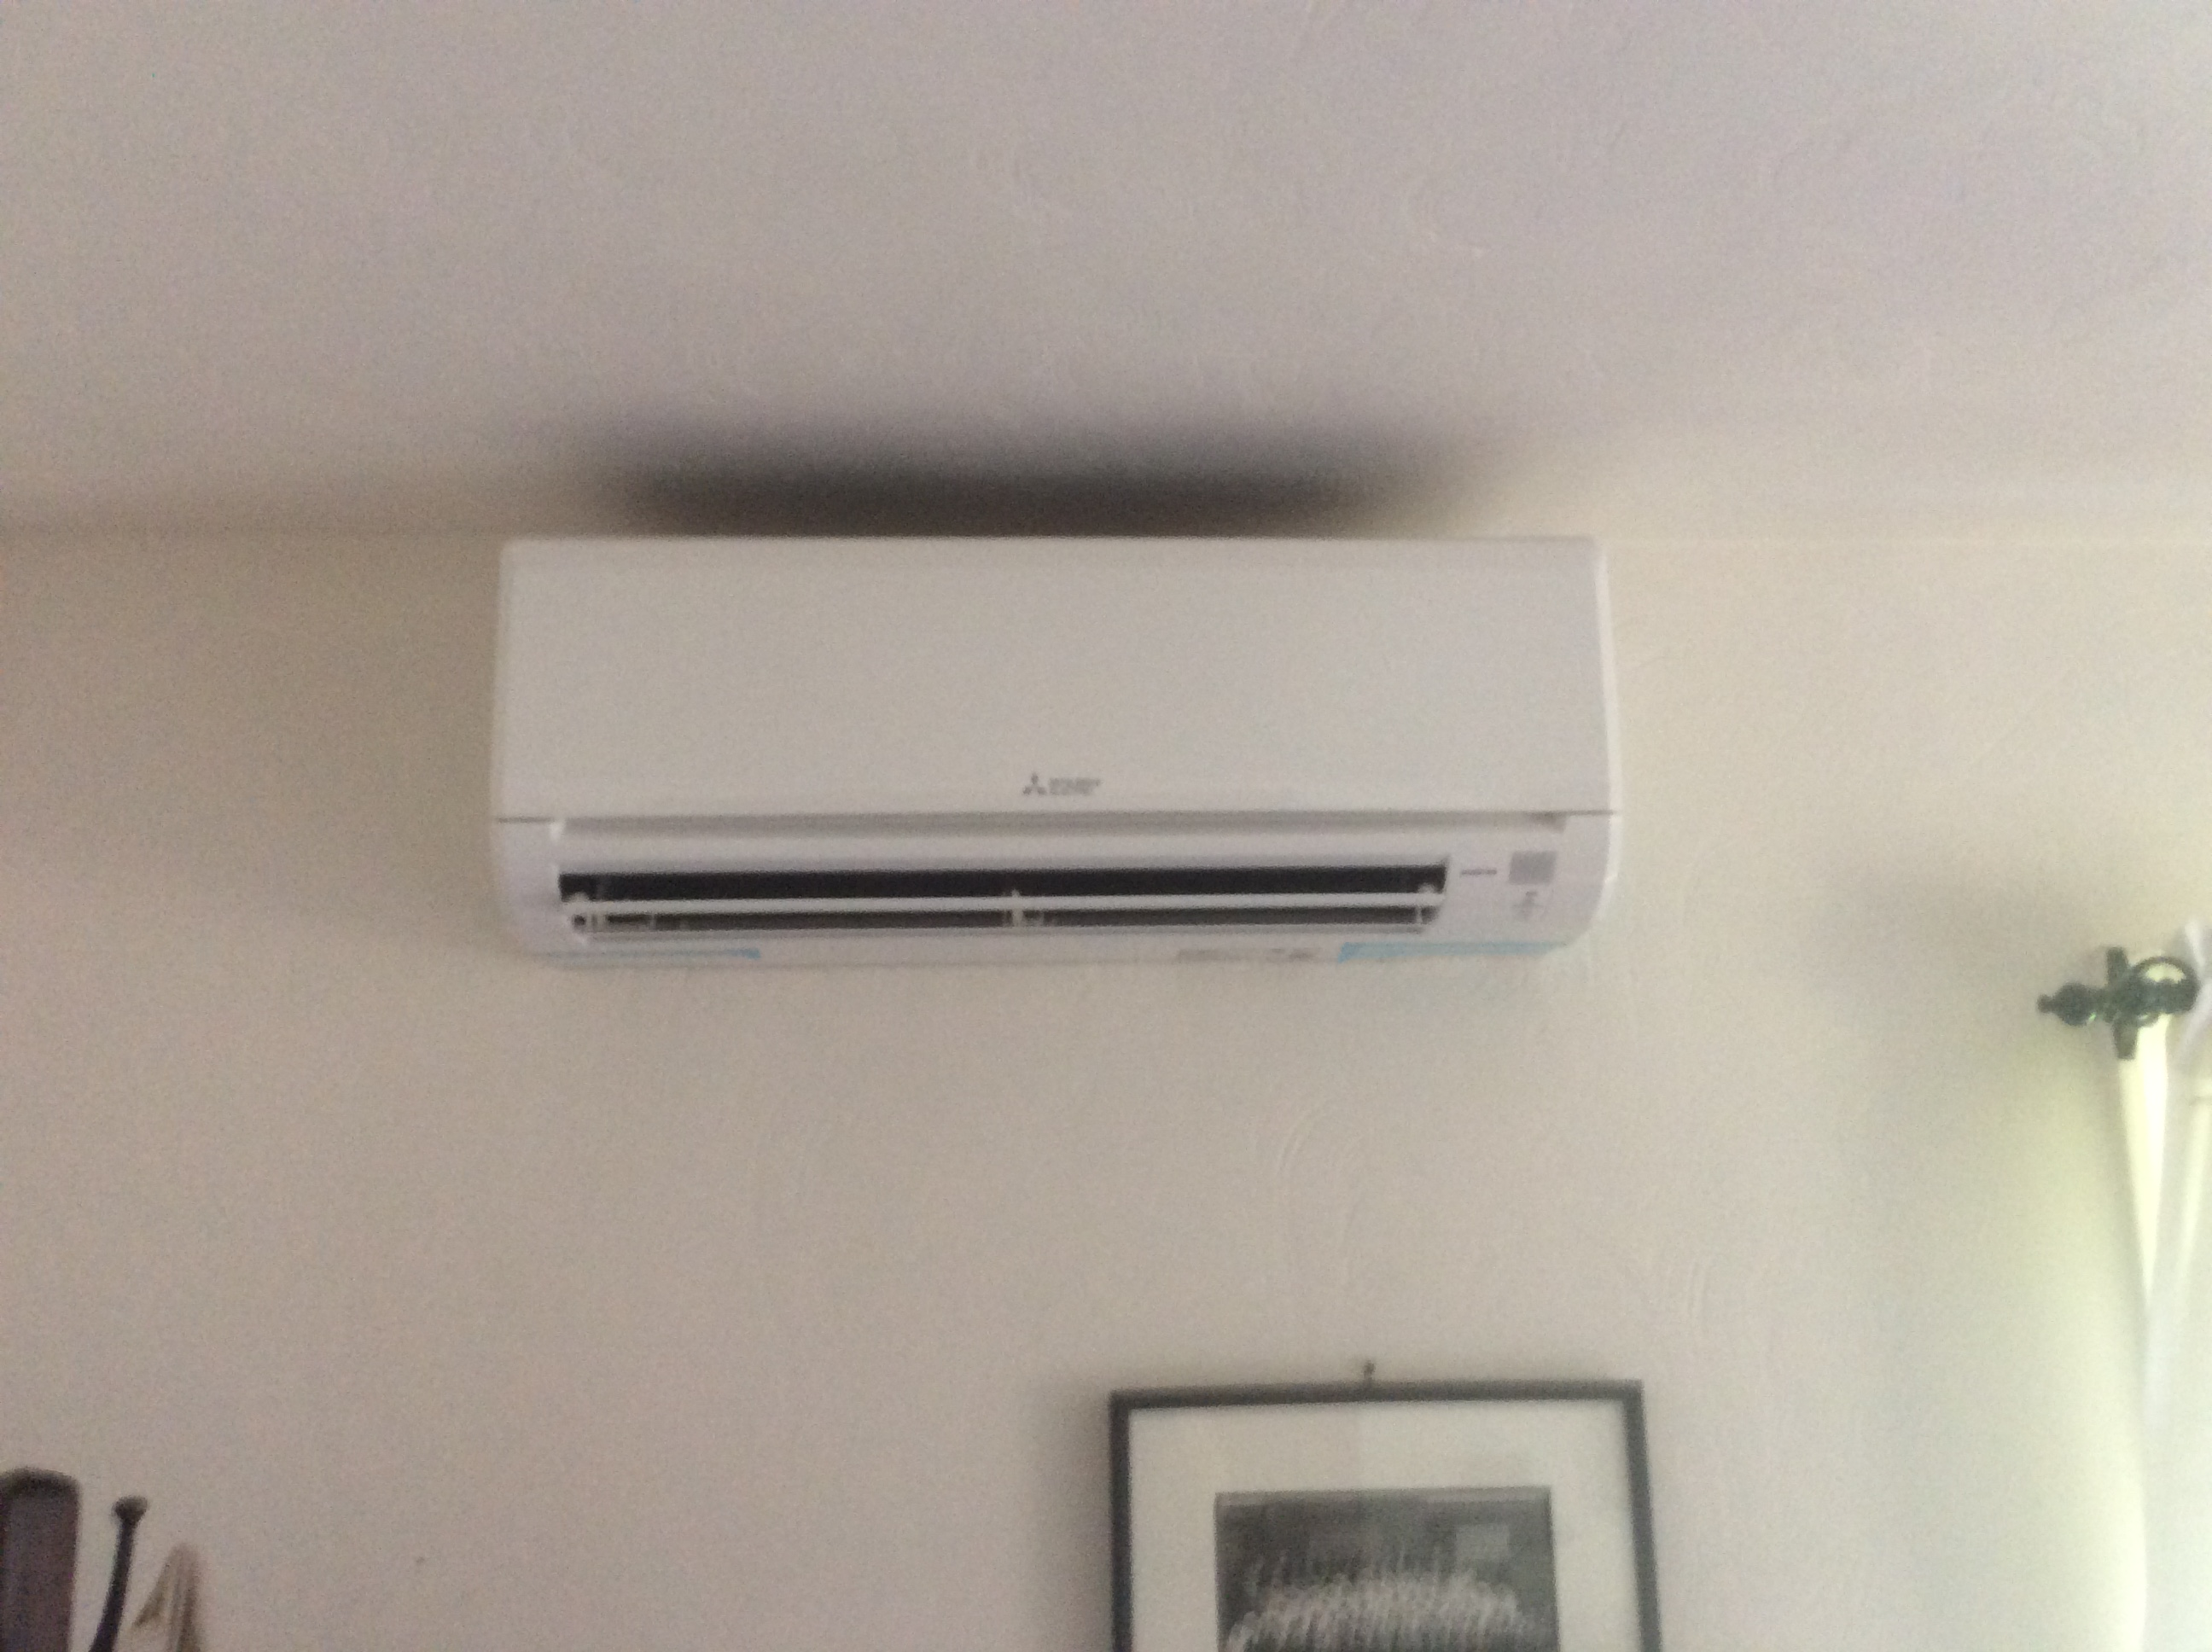 Ductless air conditioning installed by Phillips Heating & Air Conditioning in Pittsburgh, PA.